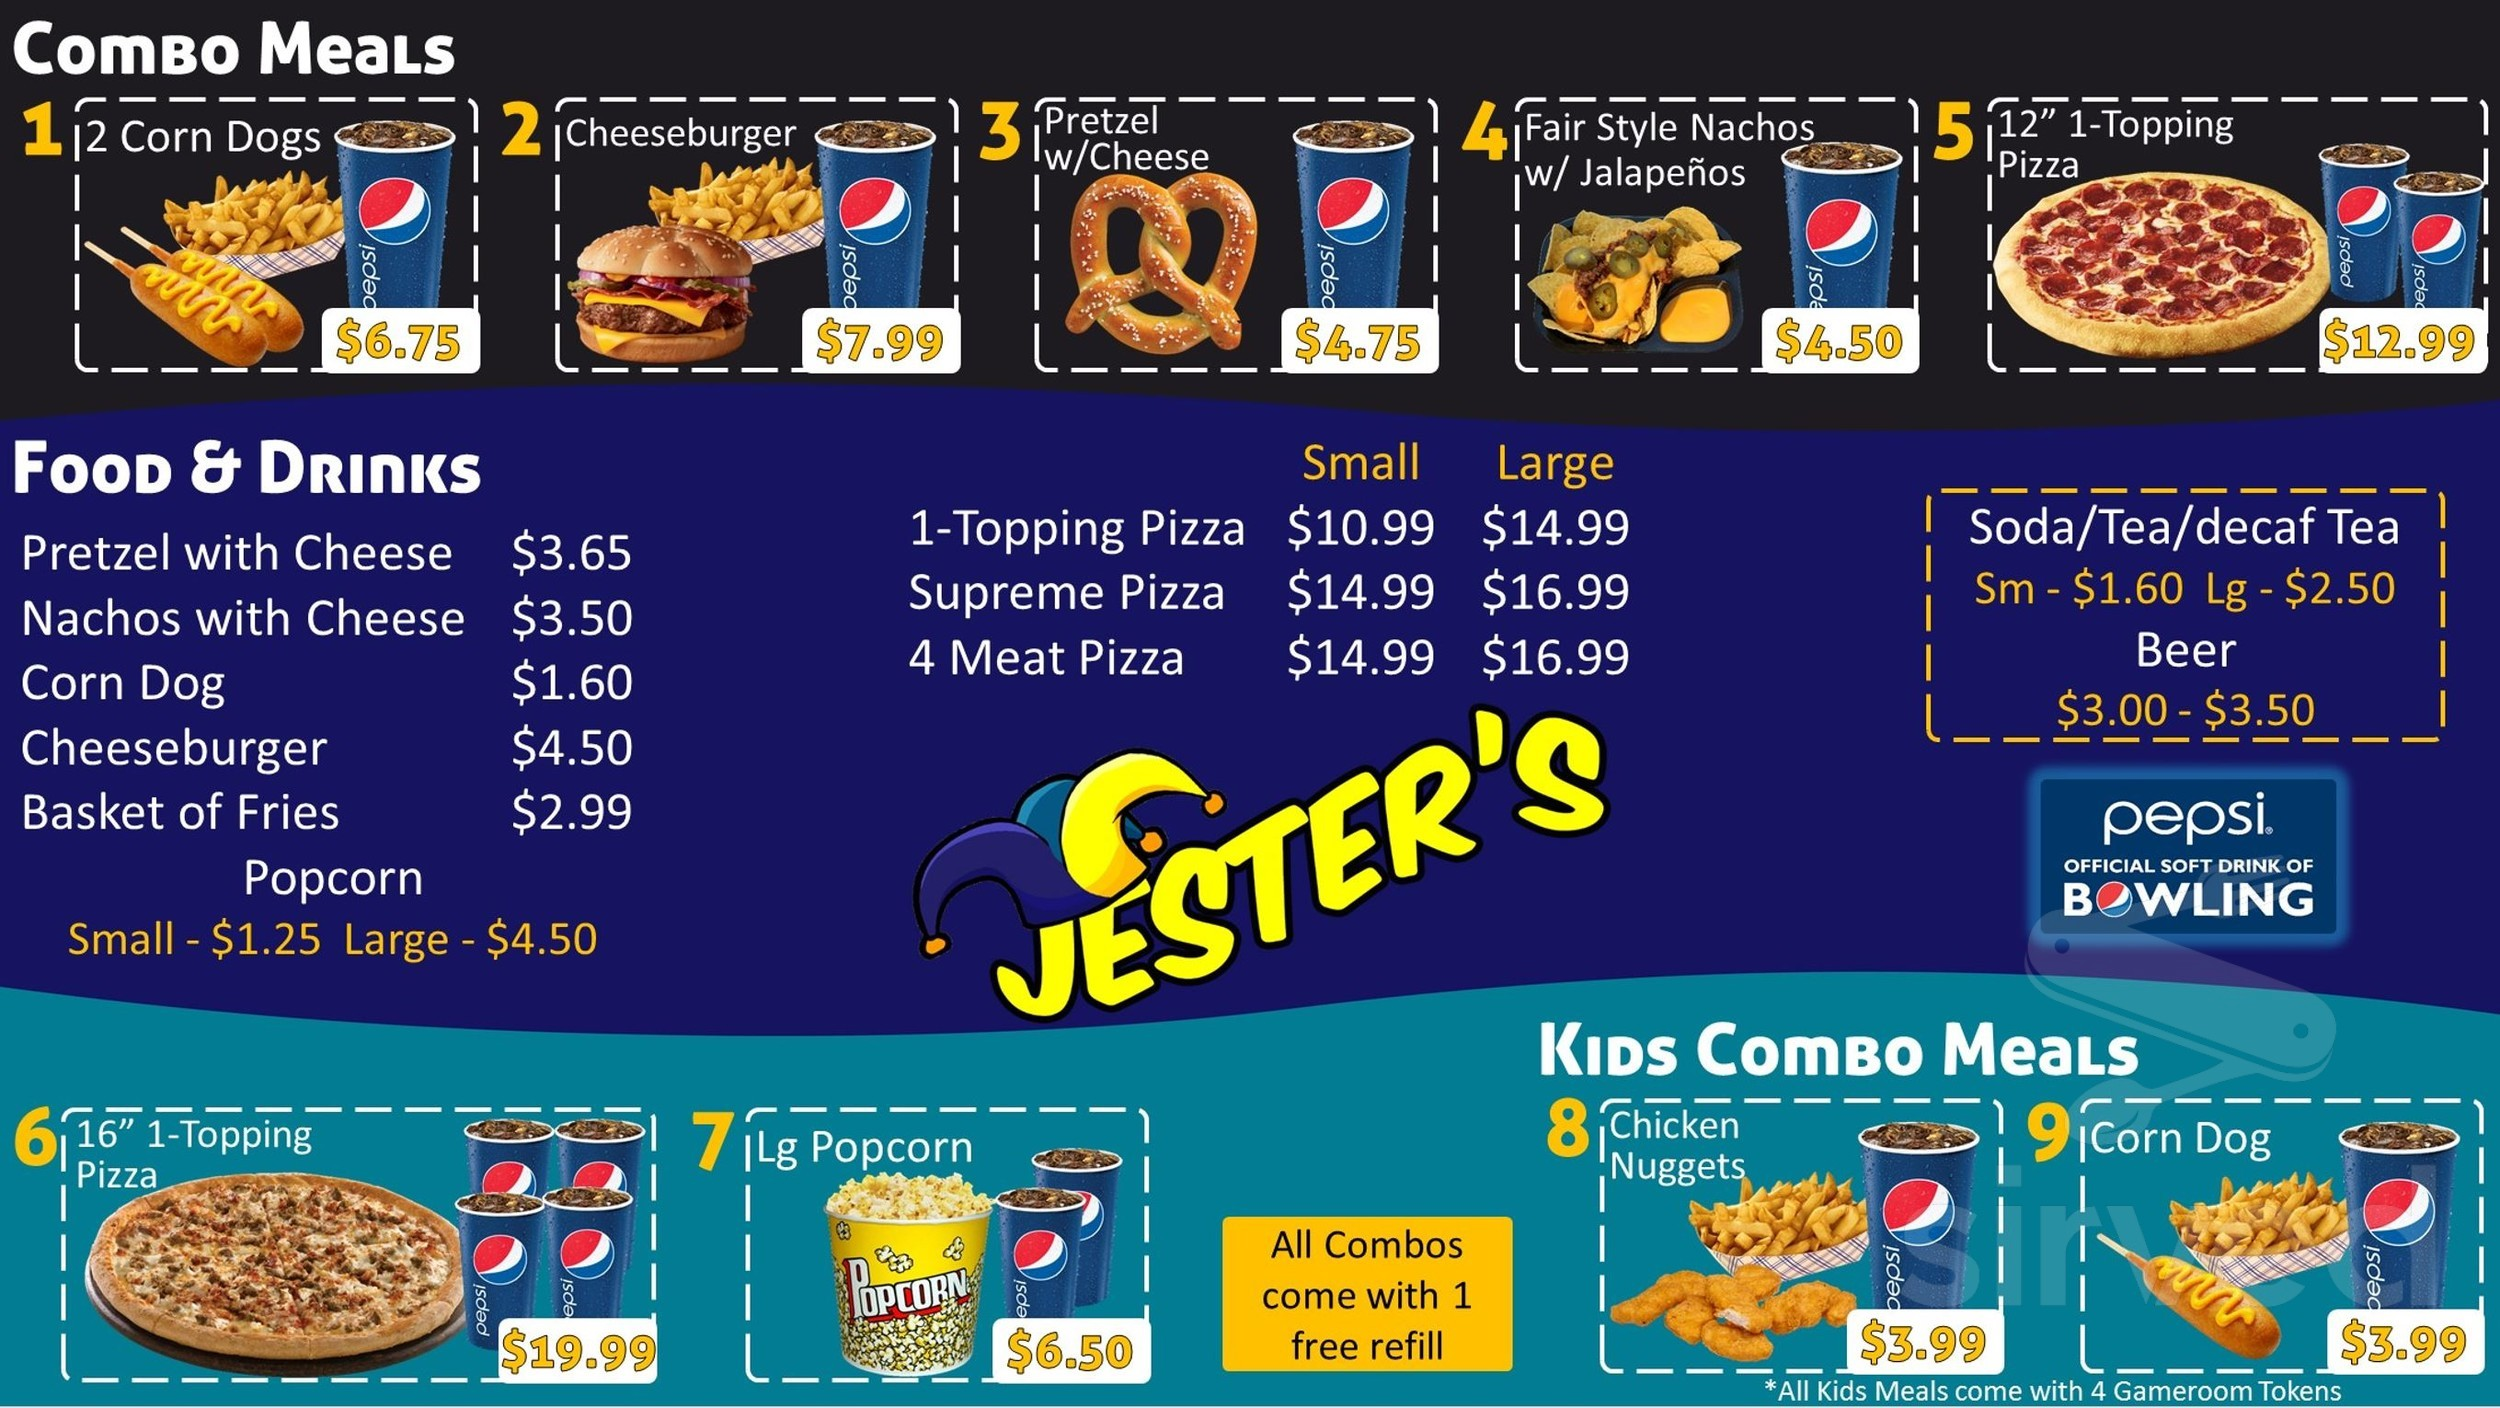 Menu for Jester's Bowling Center in Warsaw, Missouri, USA